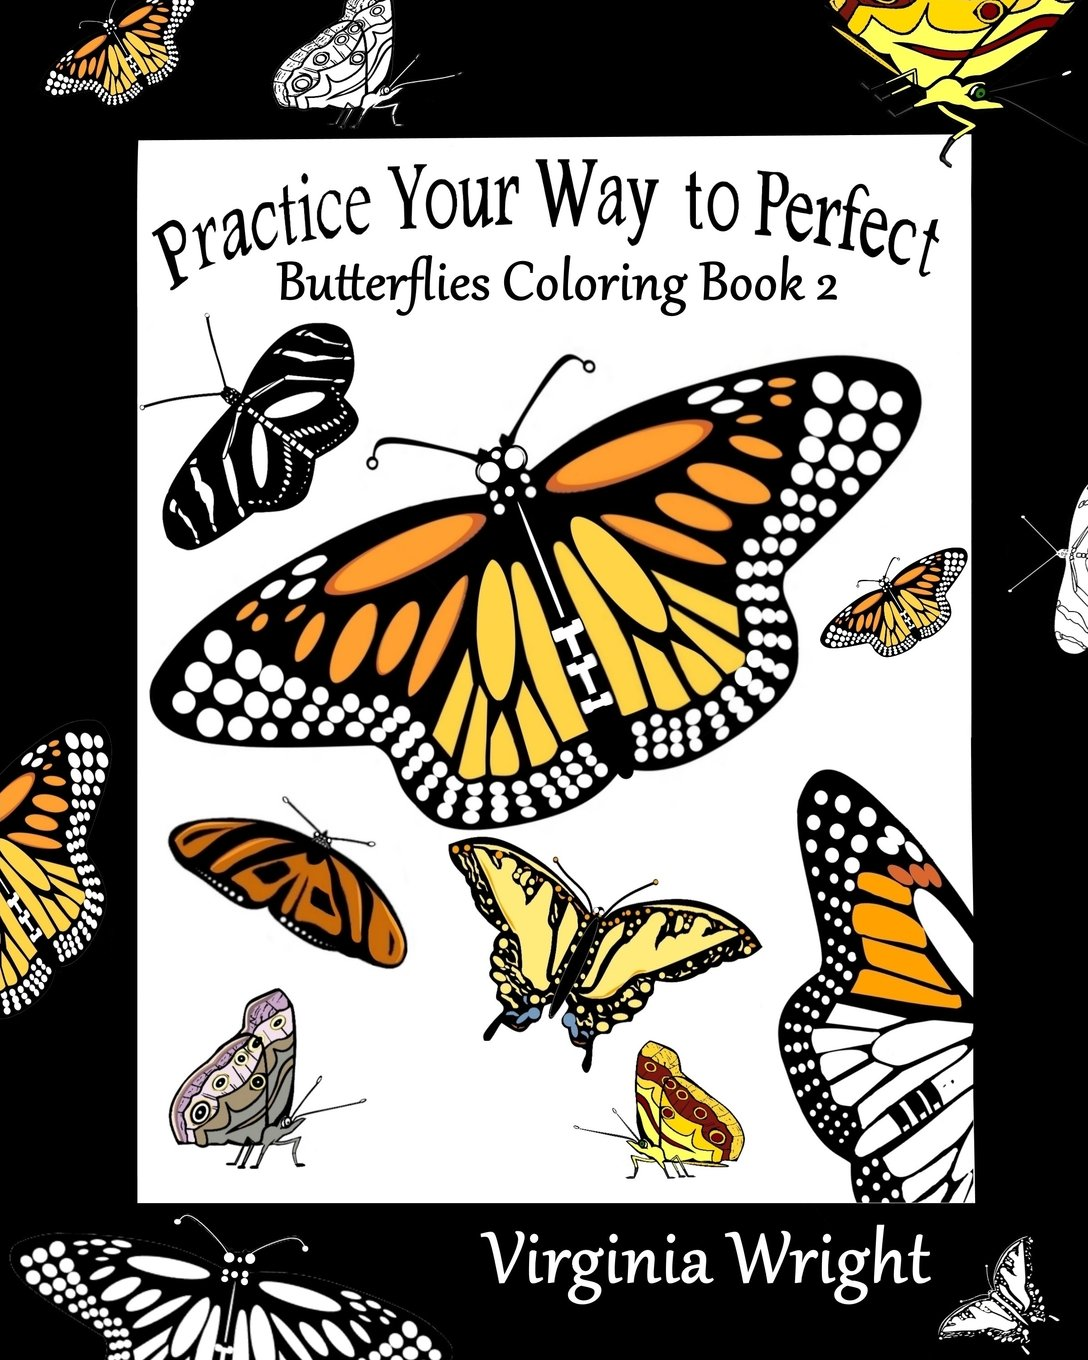 Practice Your Way To Perfect Butterflies Coloring Book 2 Virginia Wright 9781544915982 Amazon Books